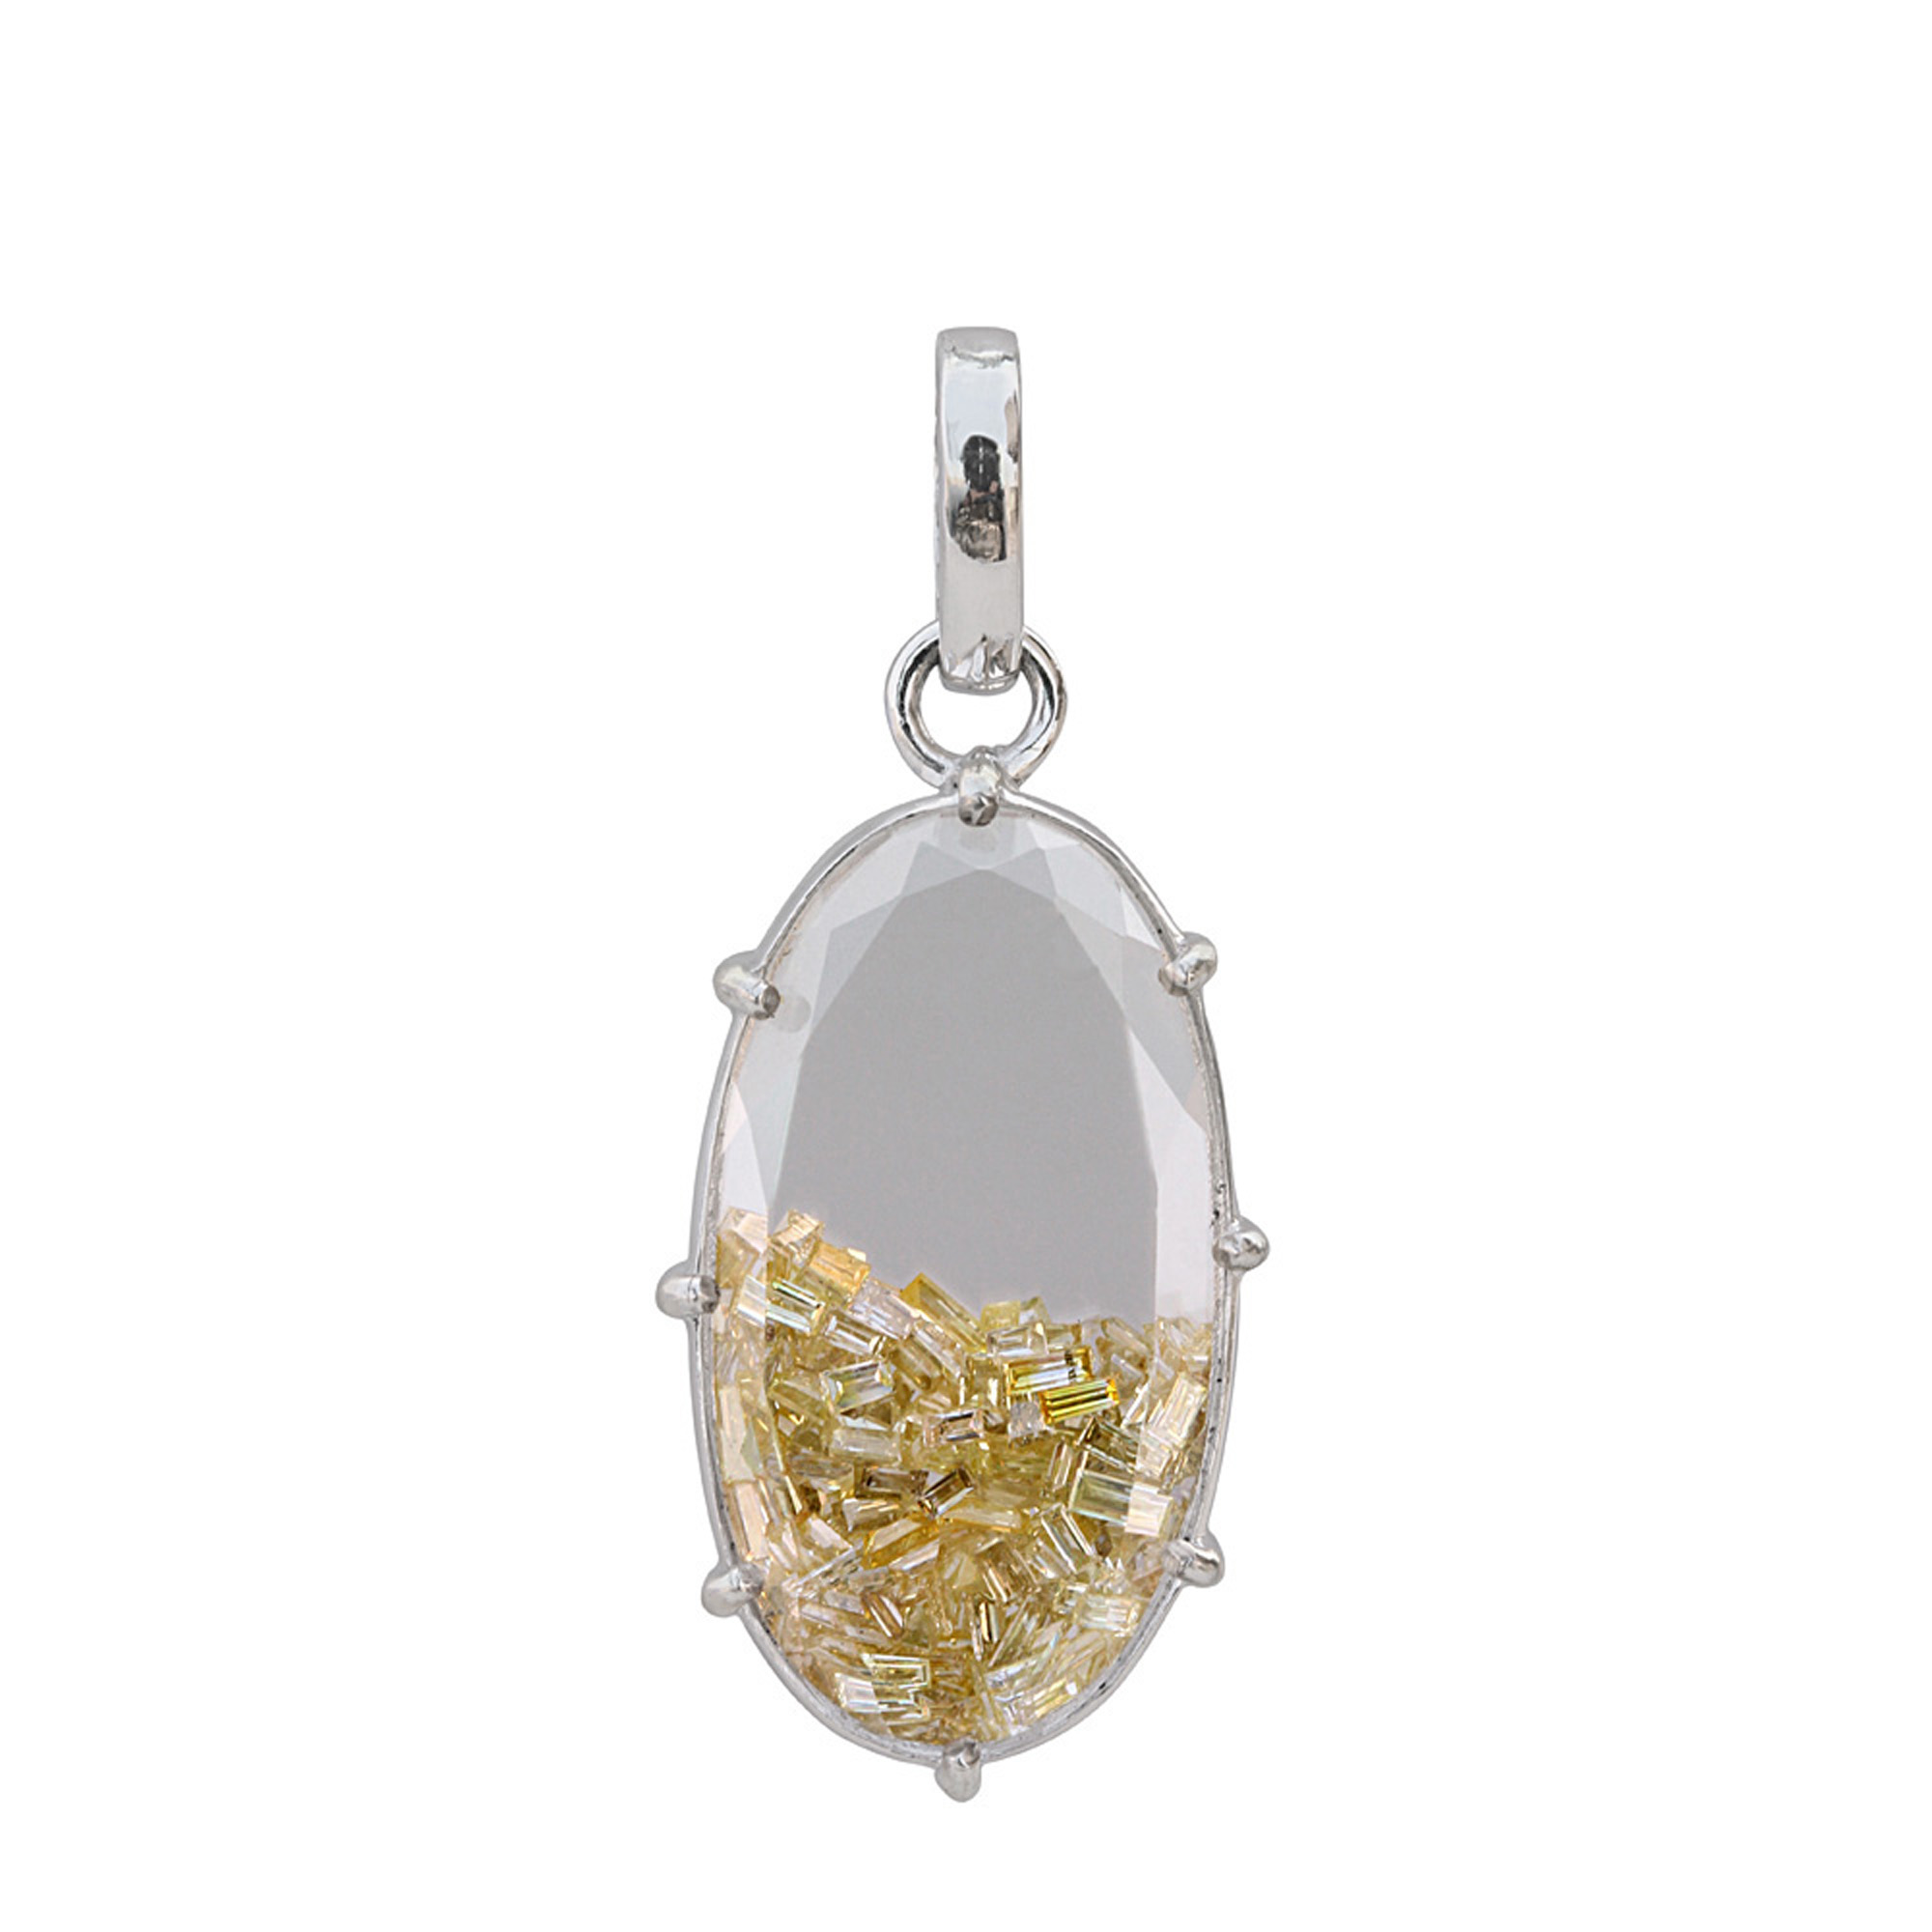 Real loose diamond18k solid white gold crystal shaker pendant